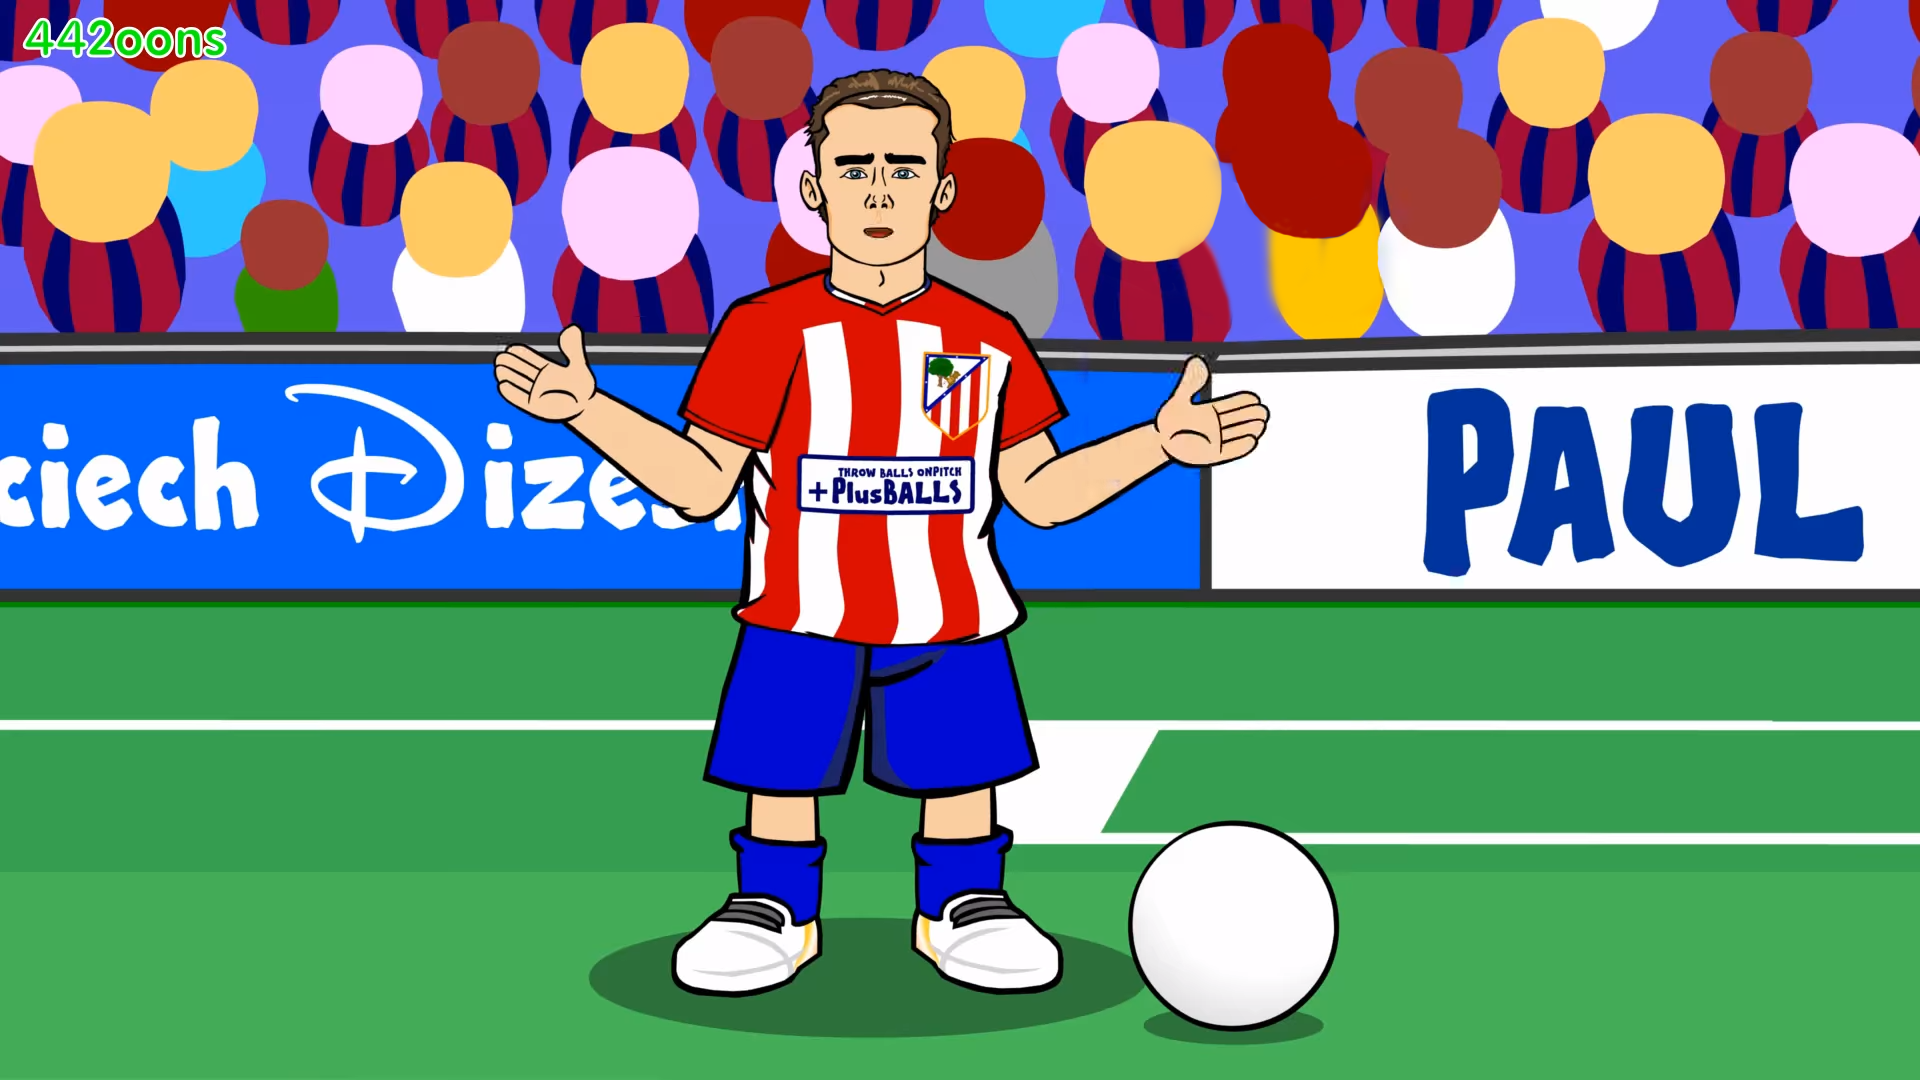 image griezmann new design png 442oons wiki fandom powered by